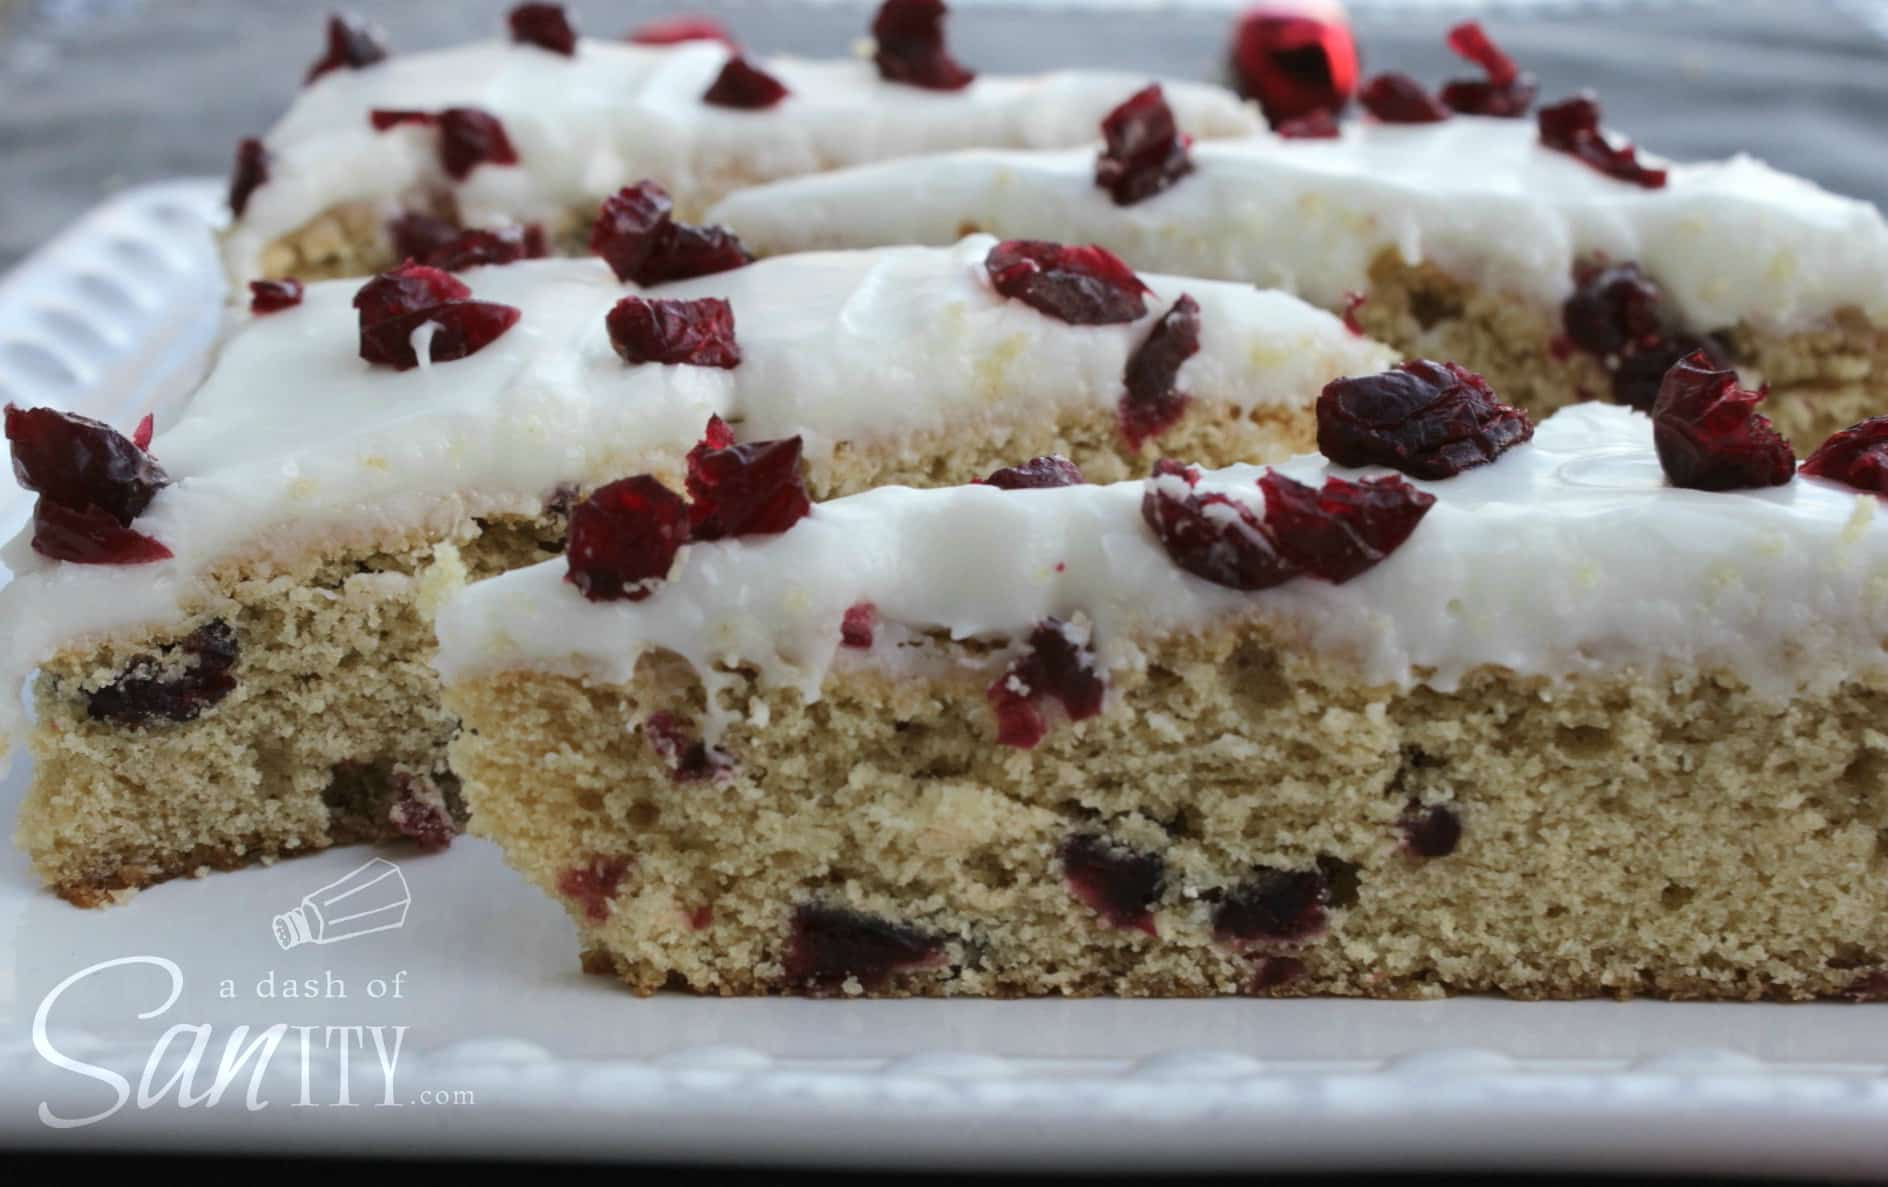 Blissful Cranberry Bars topped with dried cranberries and icing on a plate